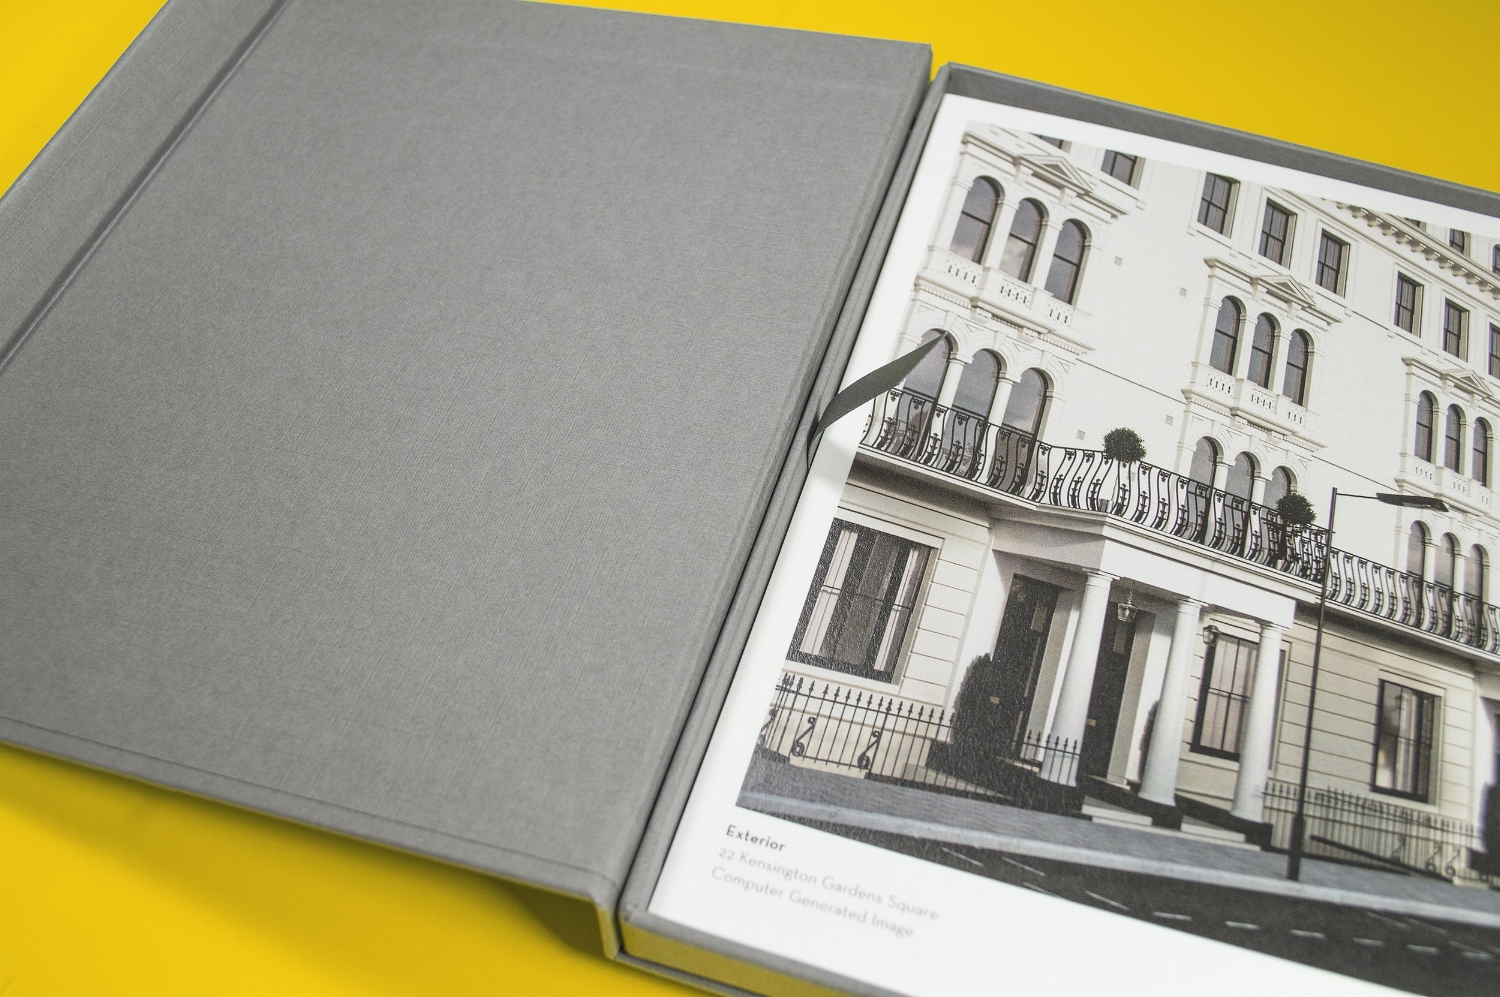 onebigcompany-design-london-art-direction-property-marketing-brochure-kensington-gardens-3.jpg